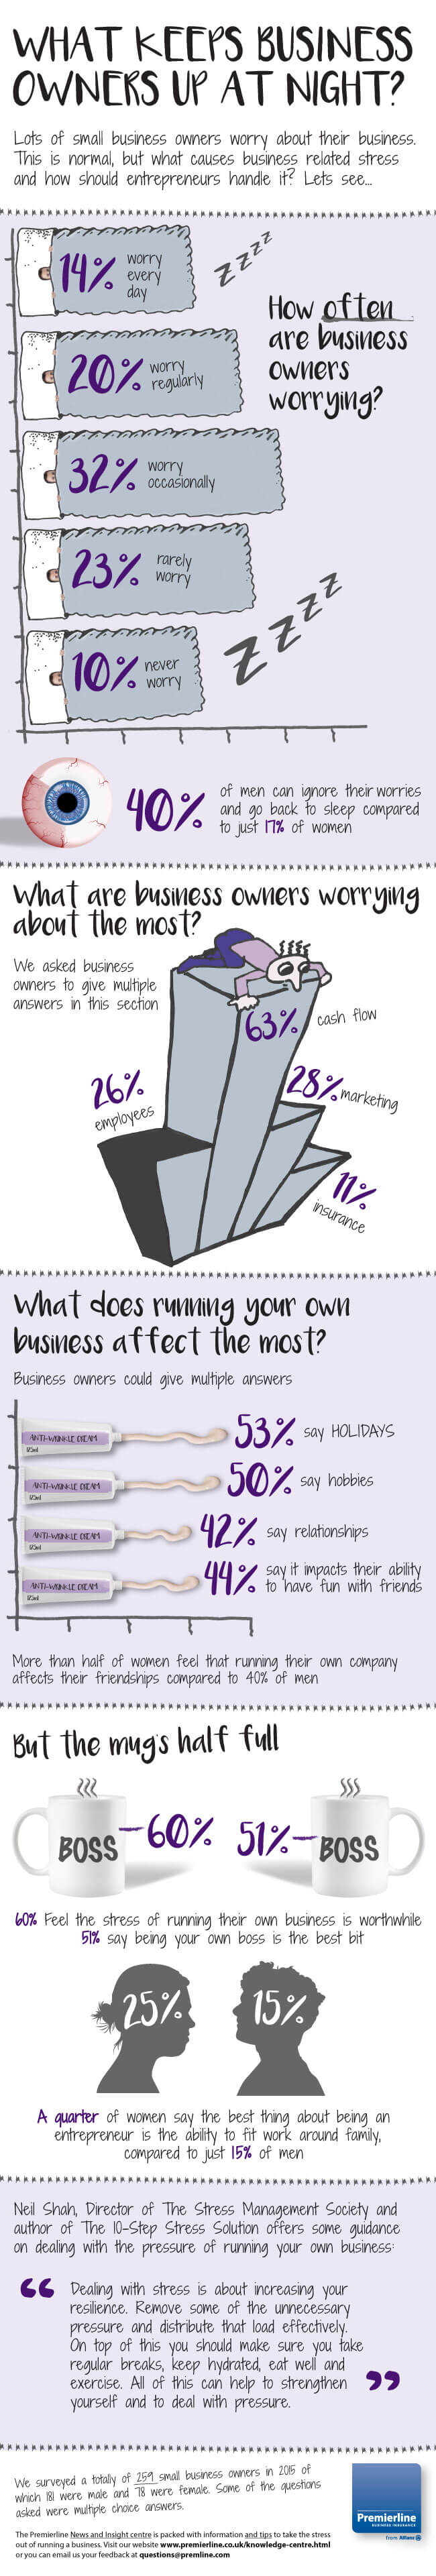 What keeps business owners up at night?